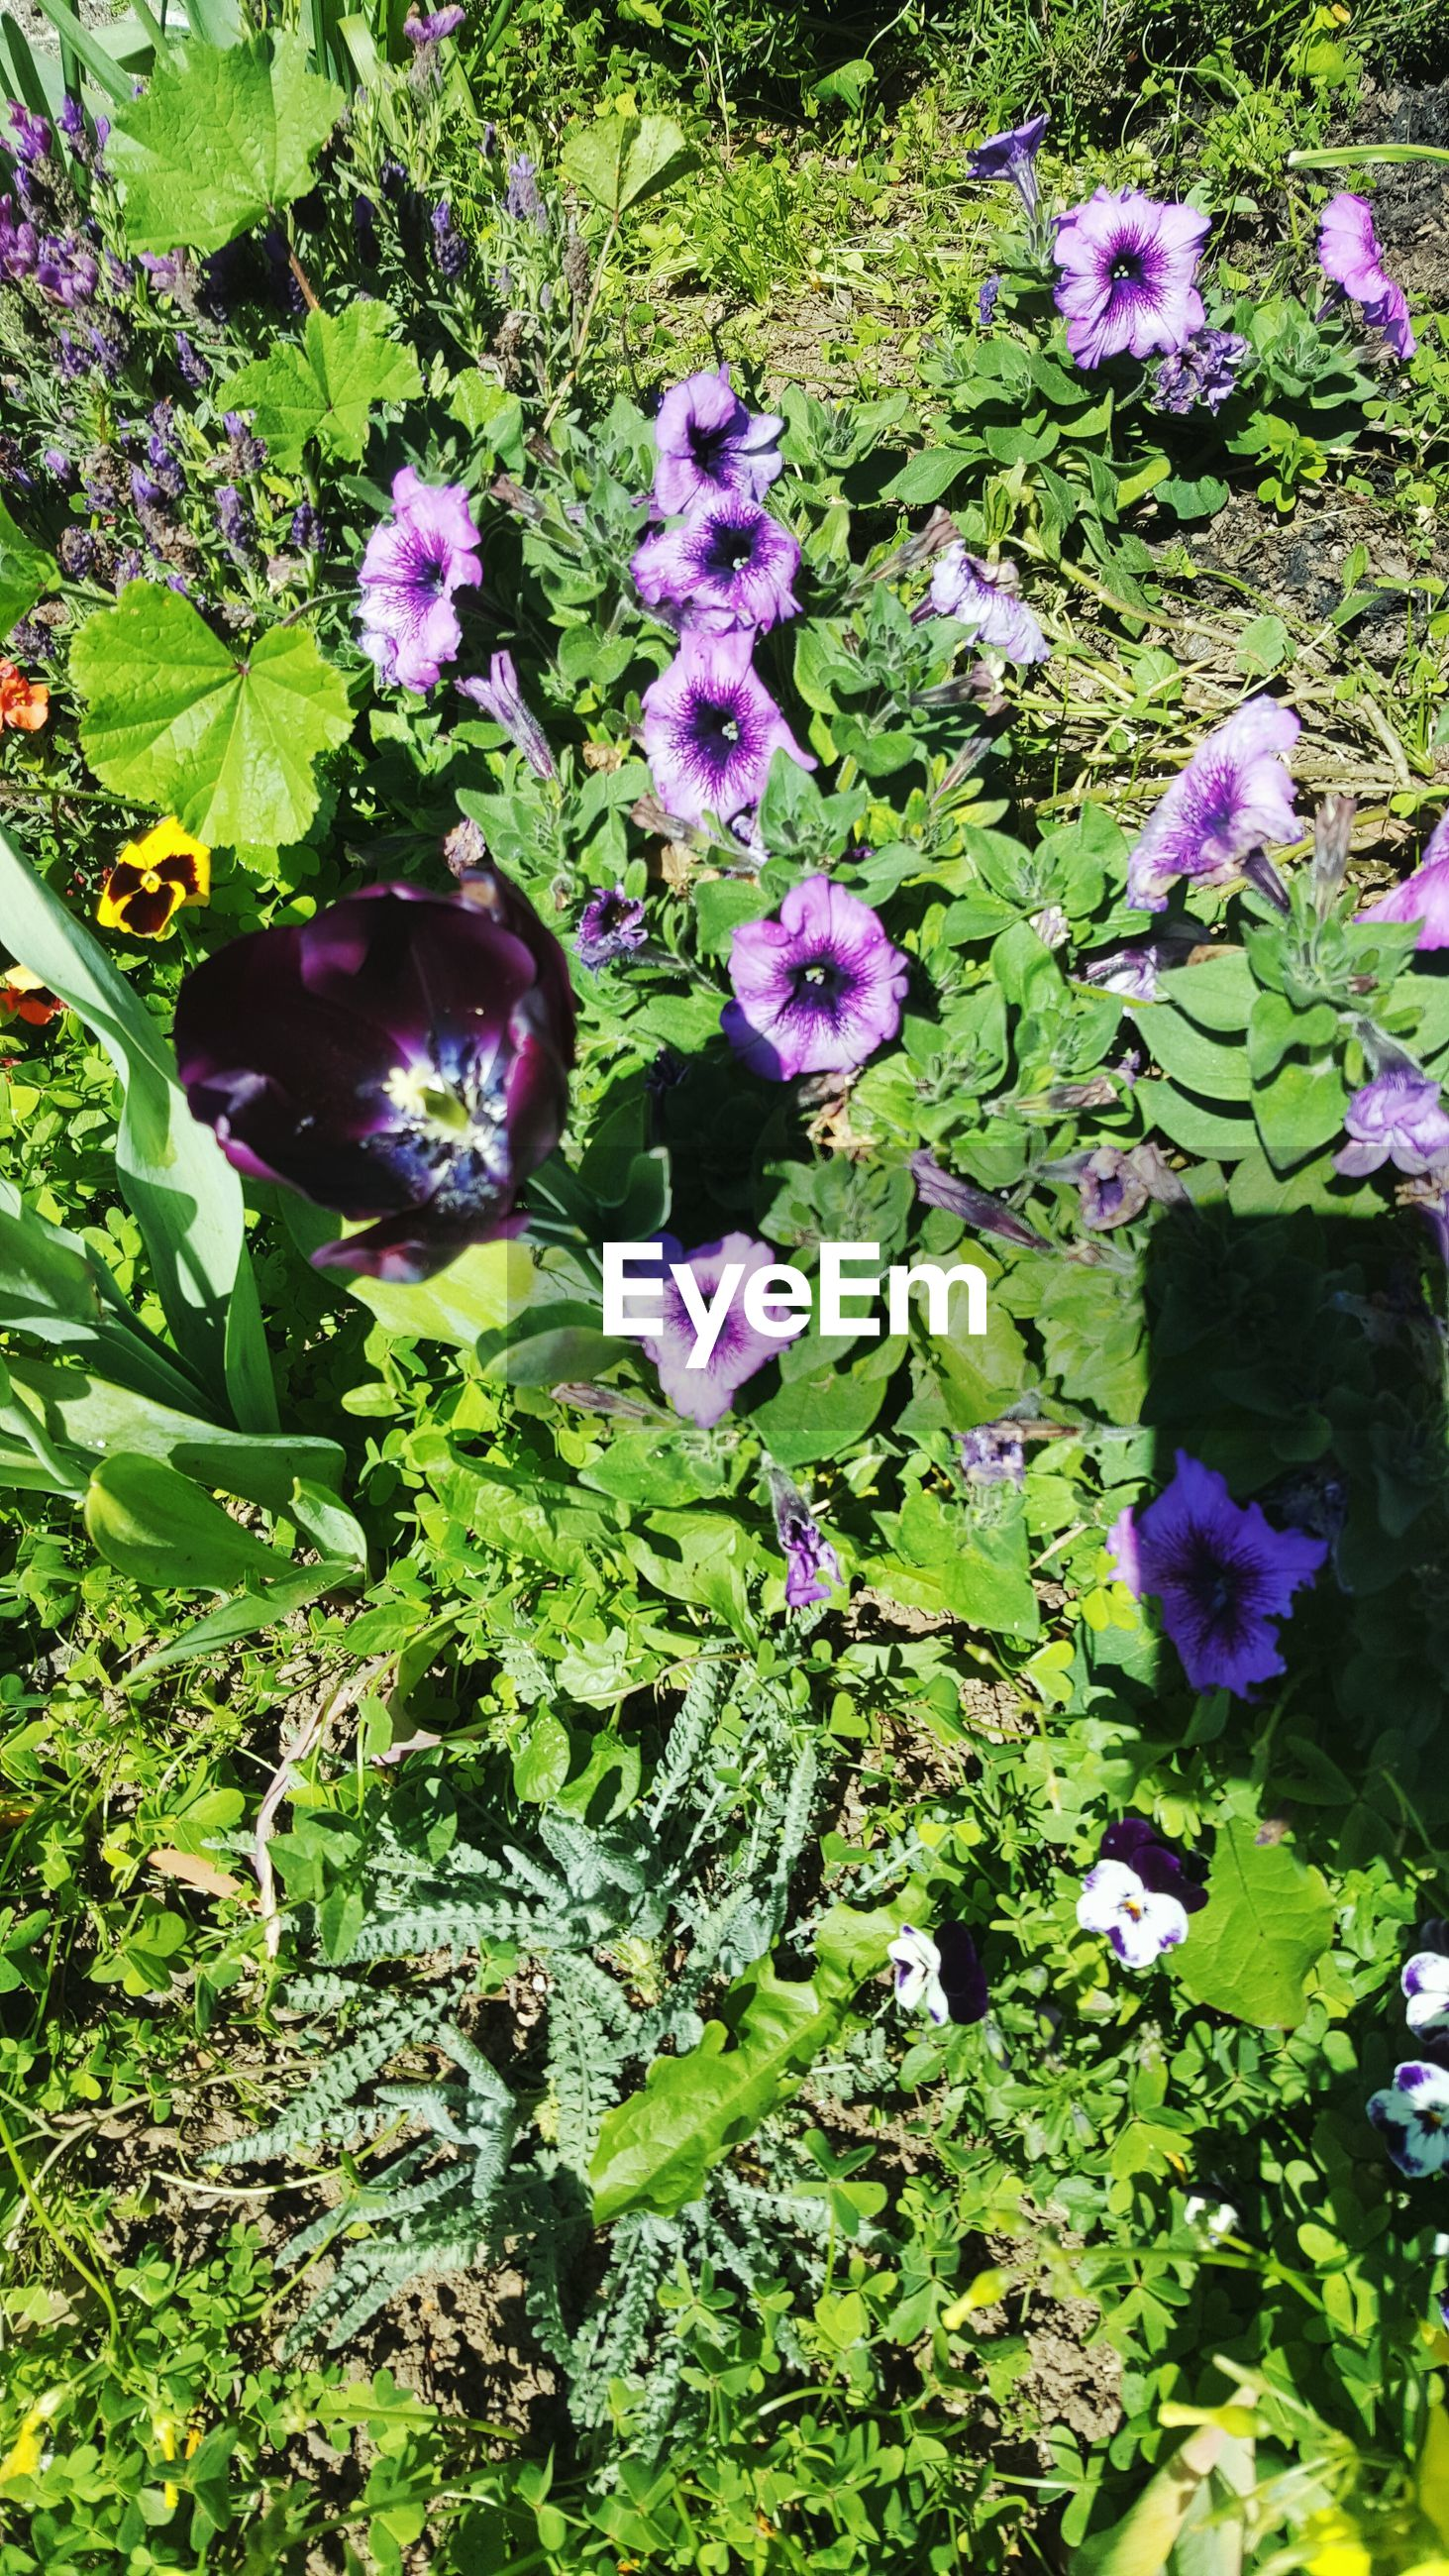 flower, growth, purple, freshness, plant, fragility, beauty in nature, nature, high angle view, green color, petal, blooming, leaf, field, flower head, in bloom, outdoors, day, no people, park - man made space